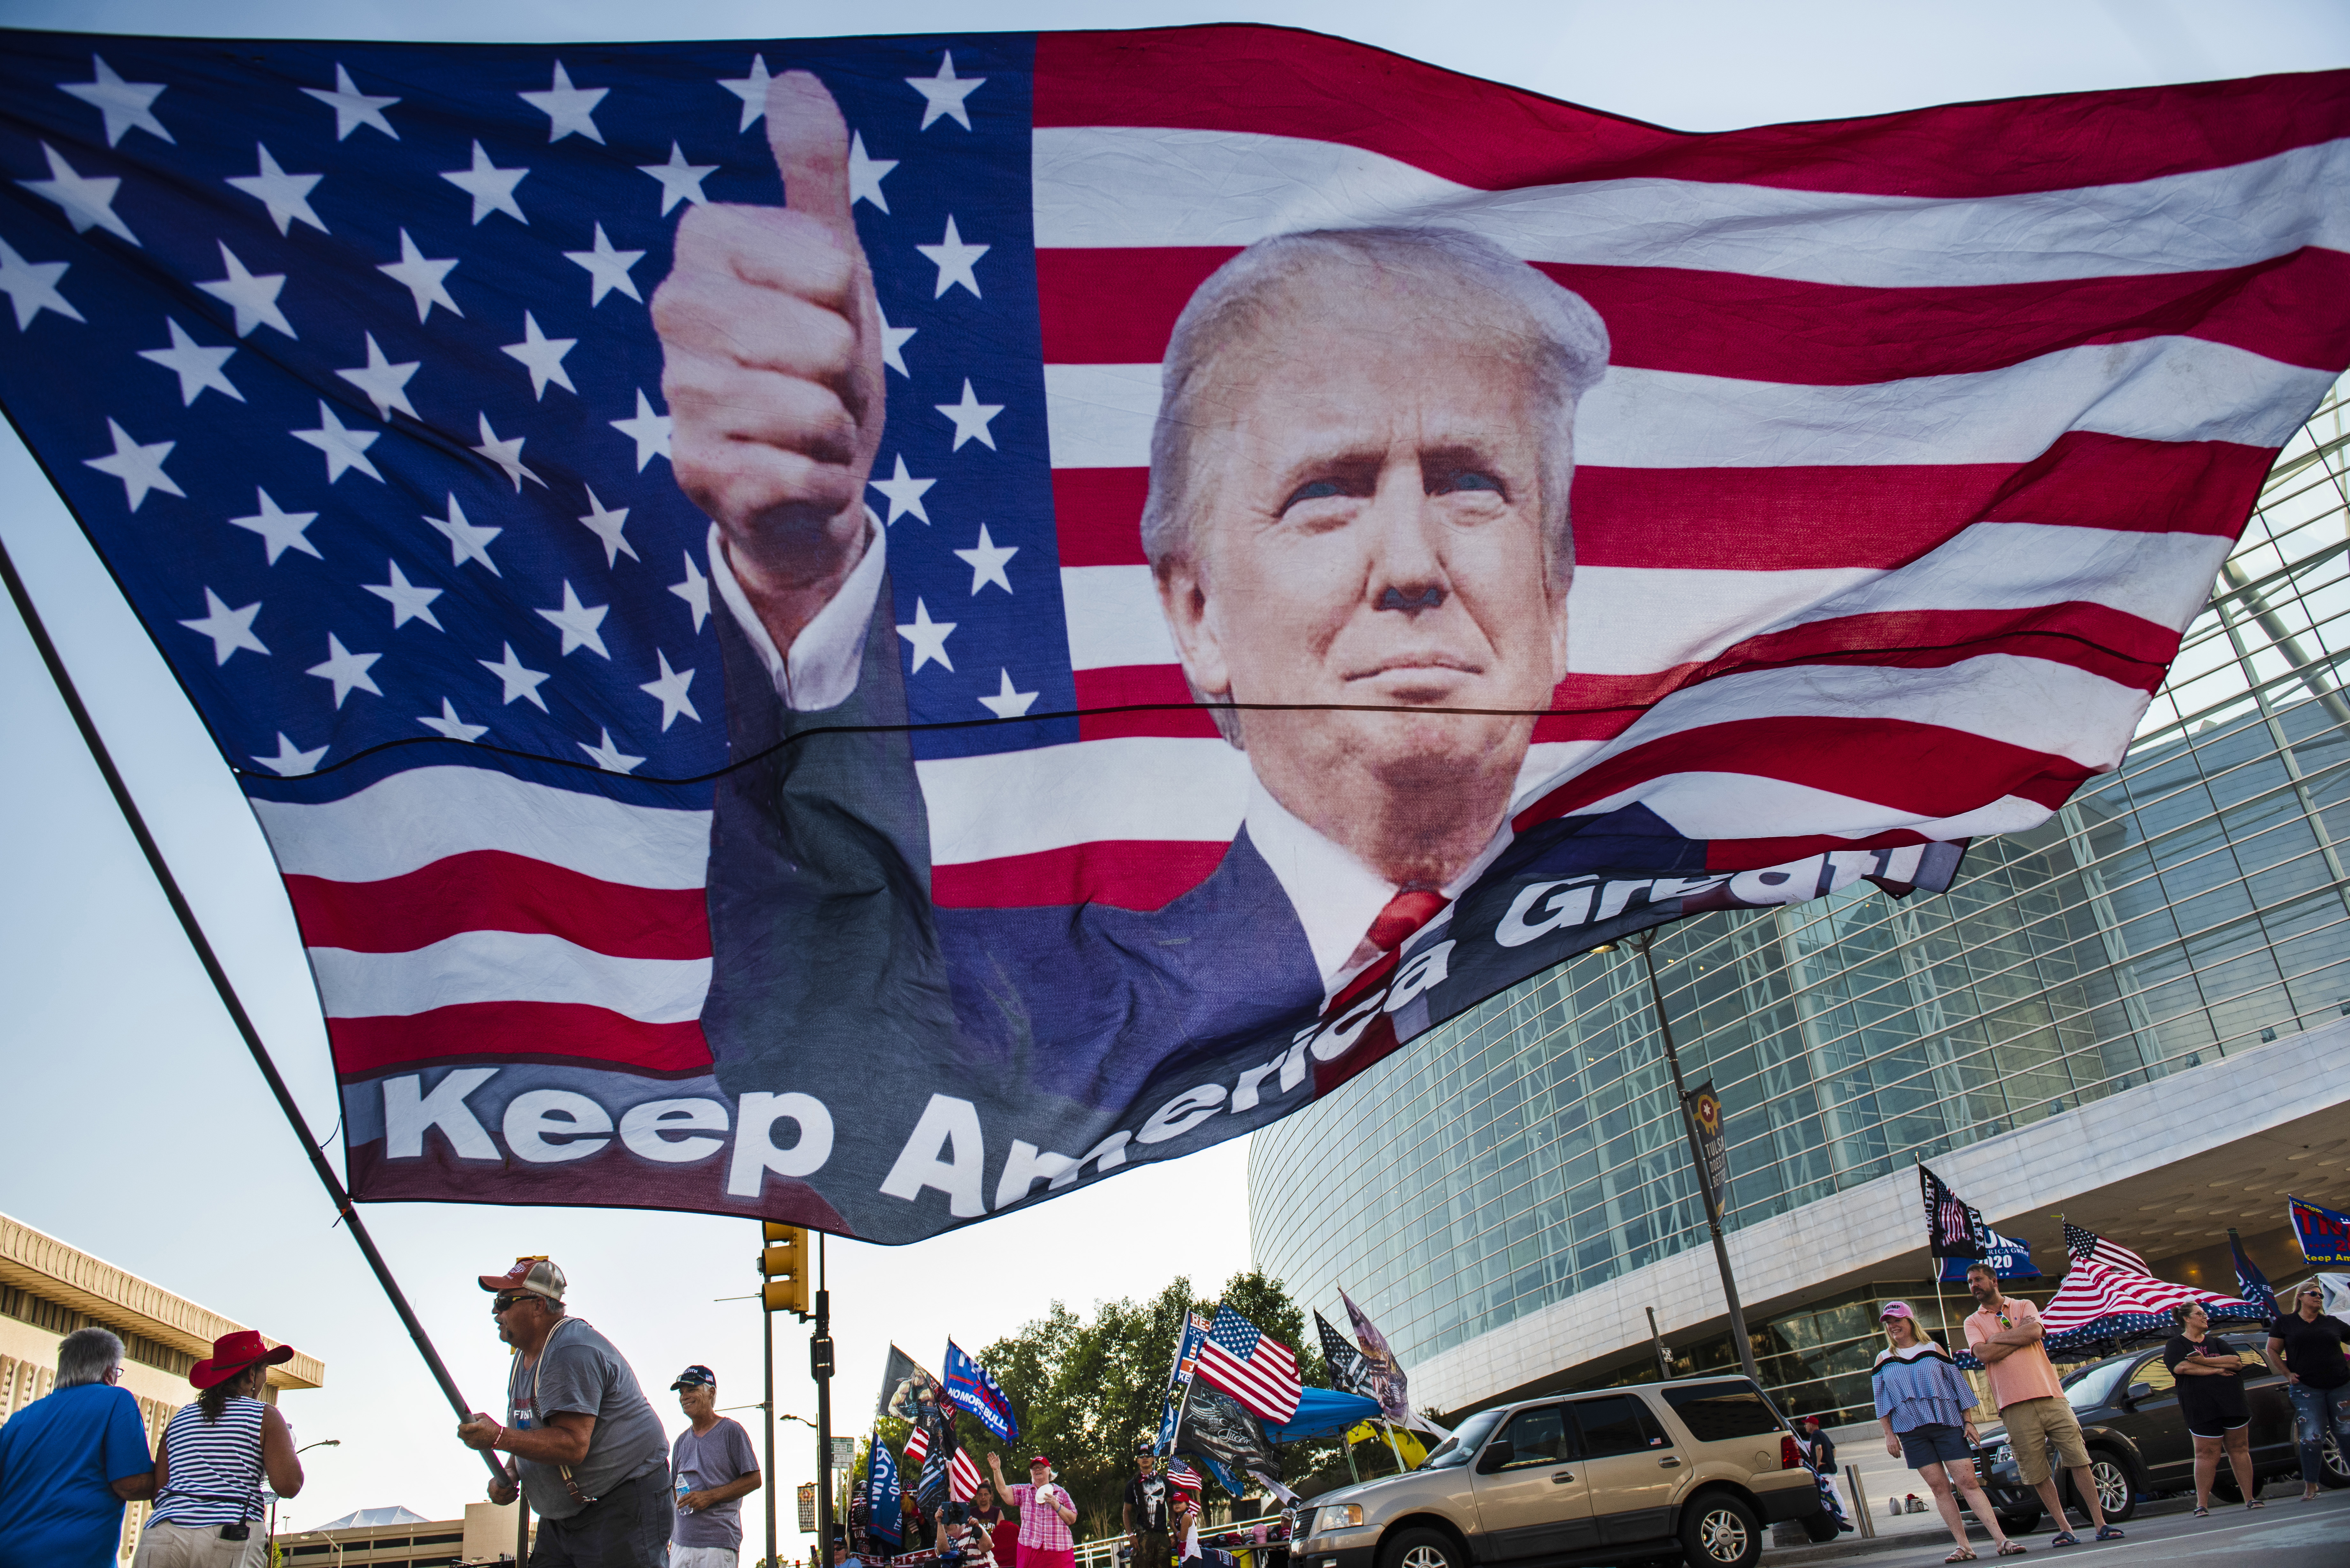 Workers At Trump S Tulsa Rally Test Positive For Covid 19 As Campaign Reboot Promises Cheers Clashes And Contagion